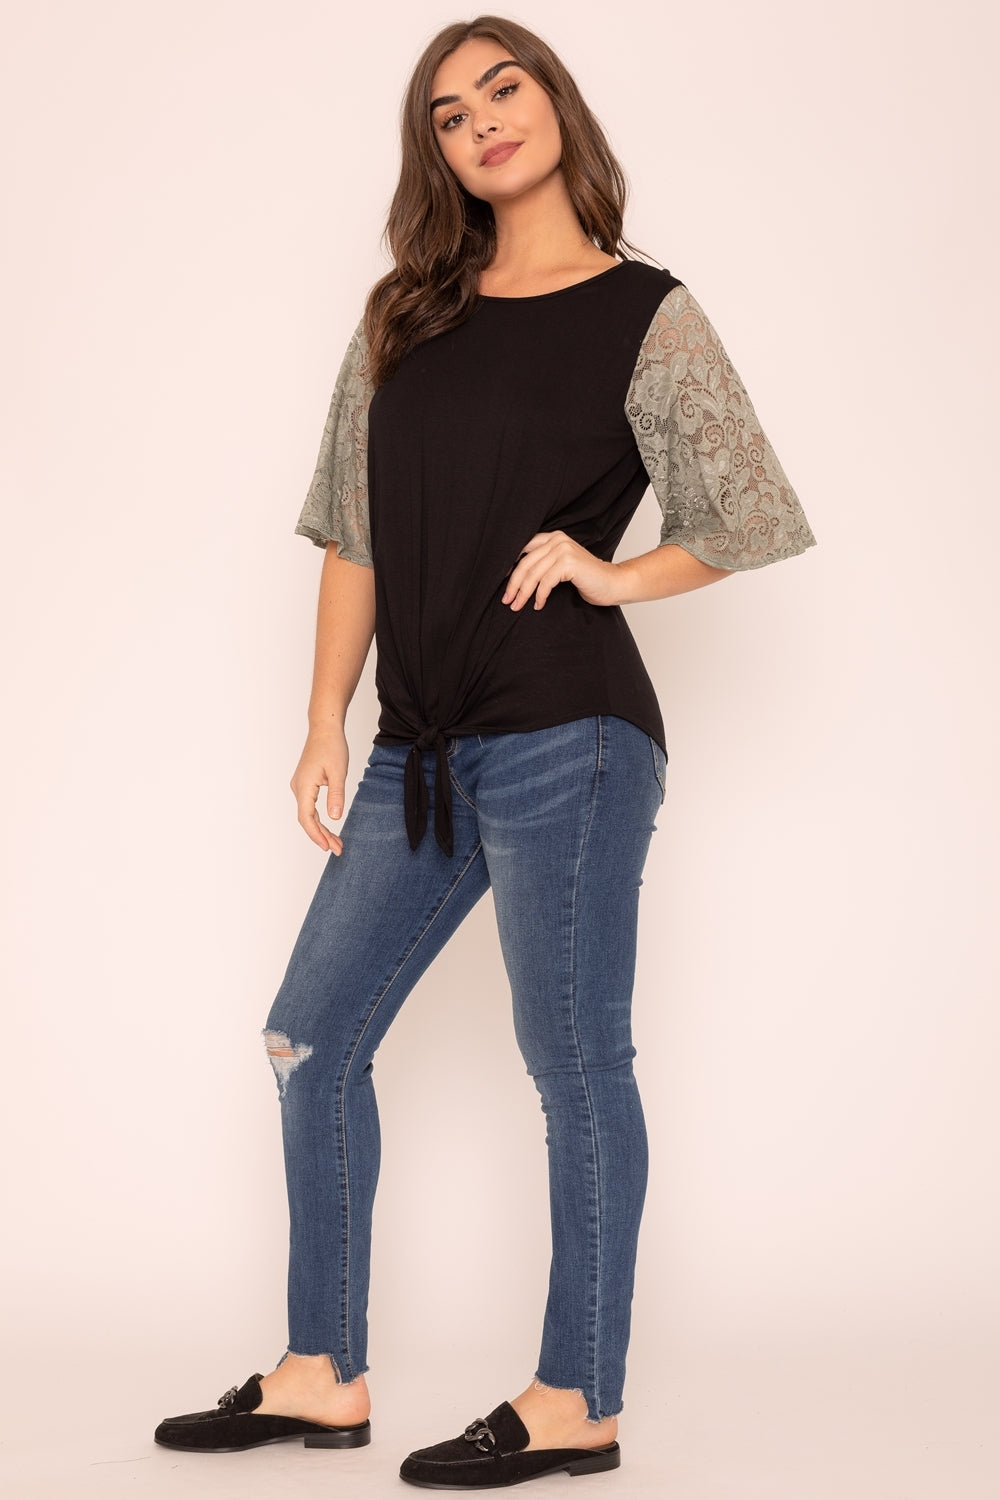 Black Tie Knot Hem Olive Lace Sleeve Top